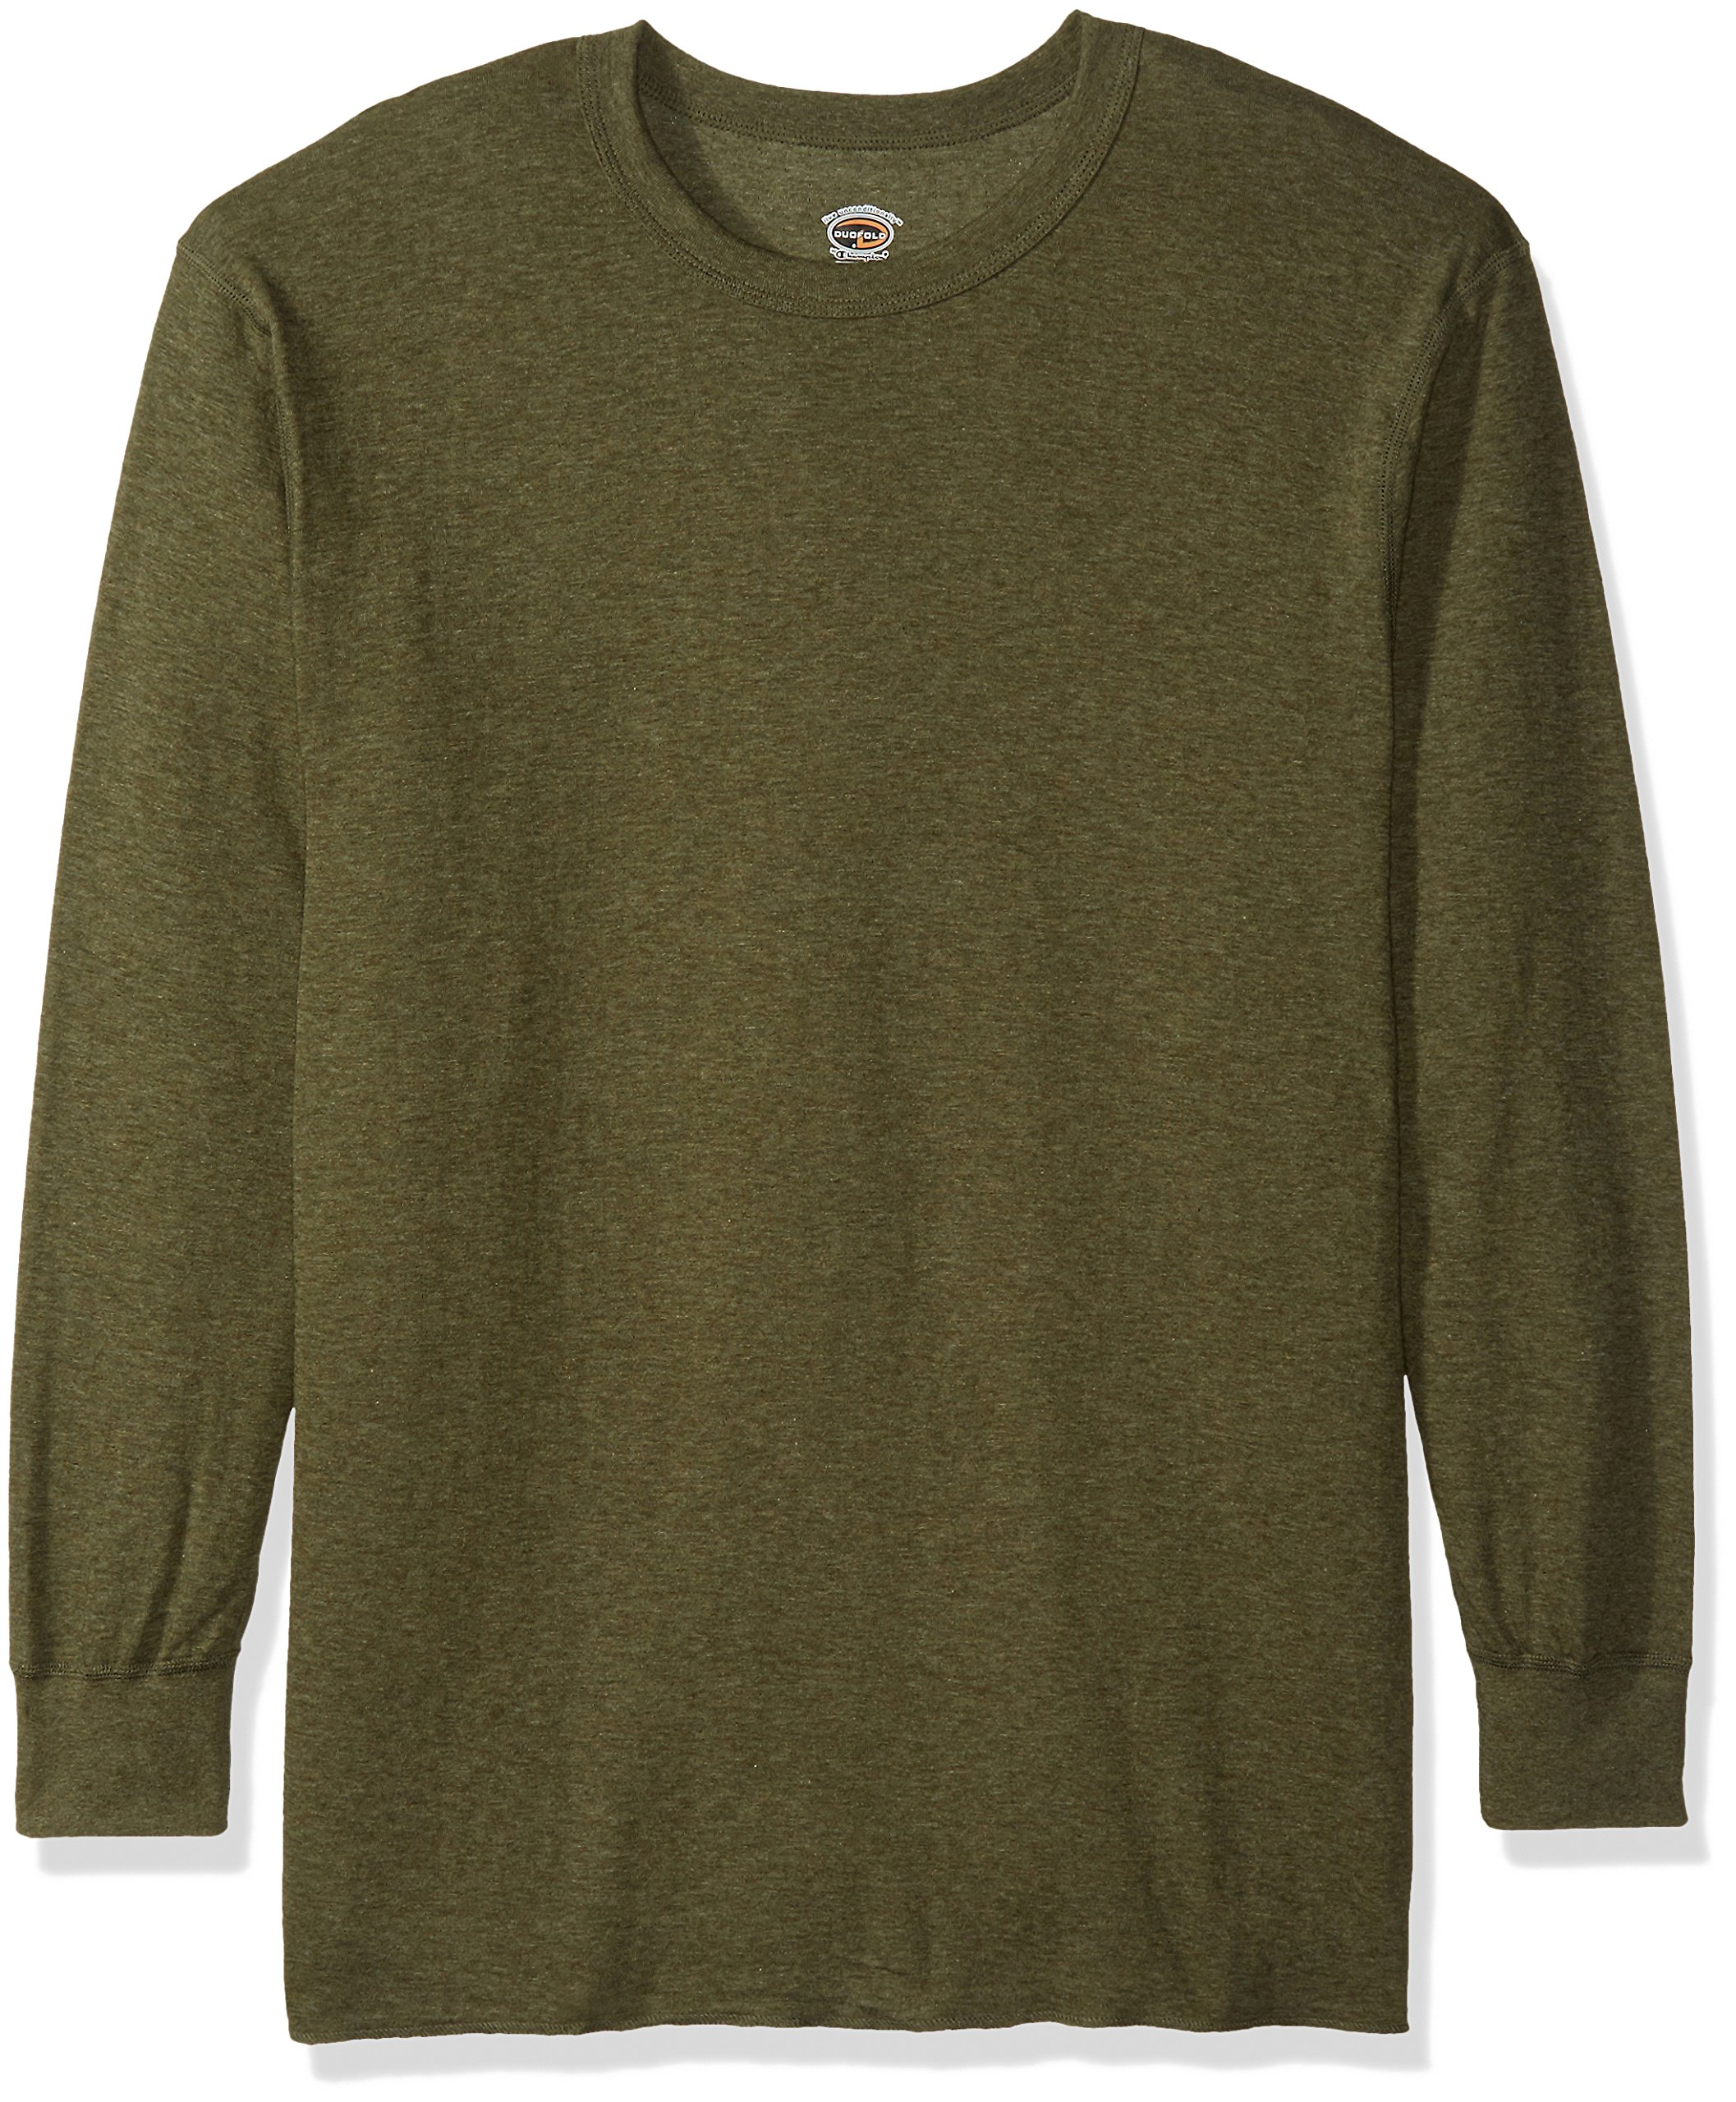 Duofold Men's Mid-Weight Crew Thermal Shirt Neck Thermal Shirt Sleepwear, Olive Heather, 2X Large